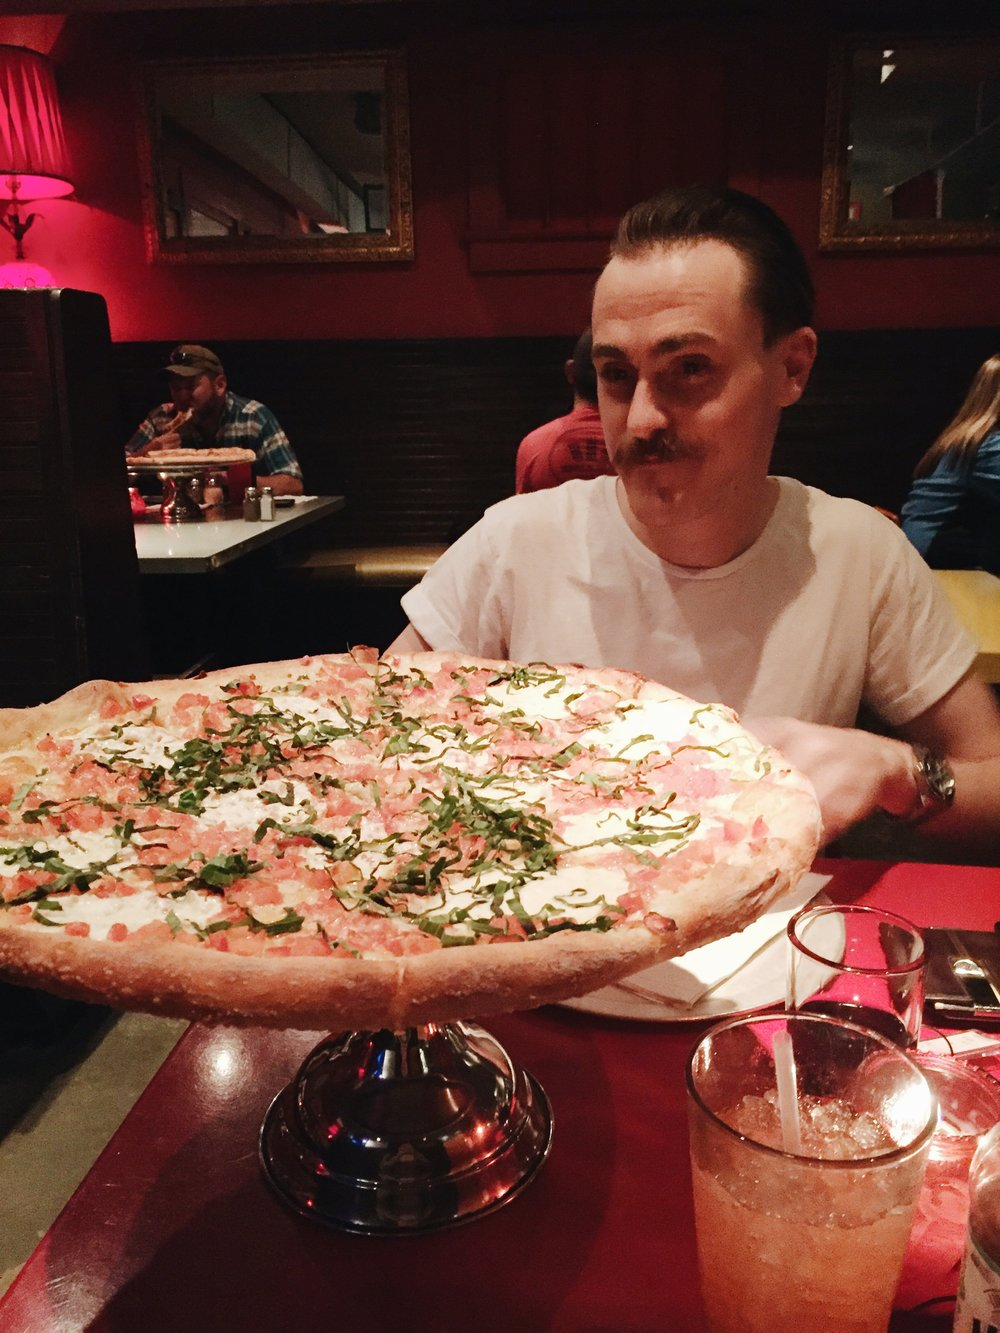 Home Slice, 1415 S Congress Ave - Everyone goes on about this pizza and it certainly didn't disappoint when it comes to size - everything's bigger in Texas! We stuck with the classic margherita and it was delicious.